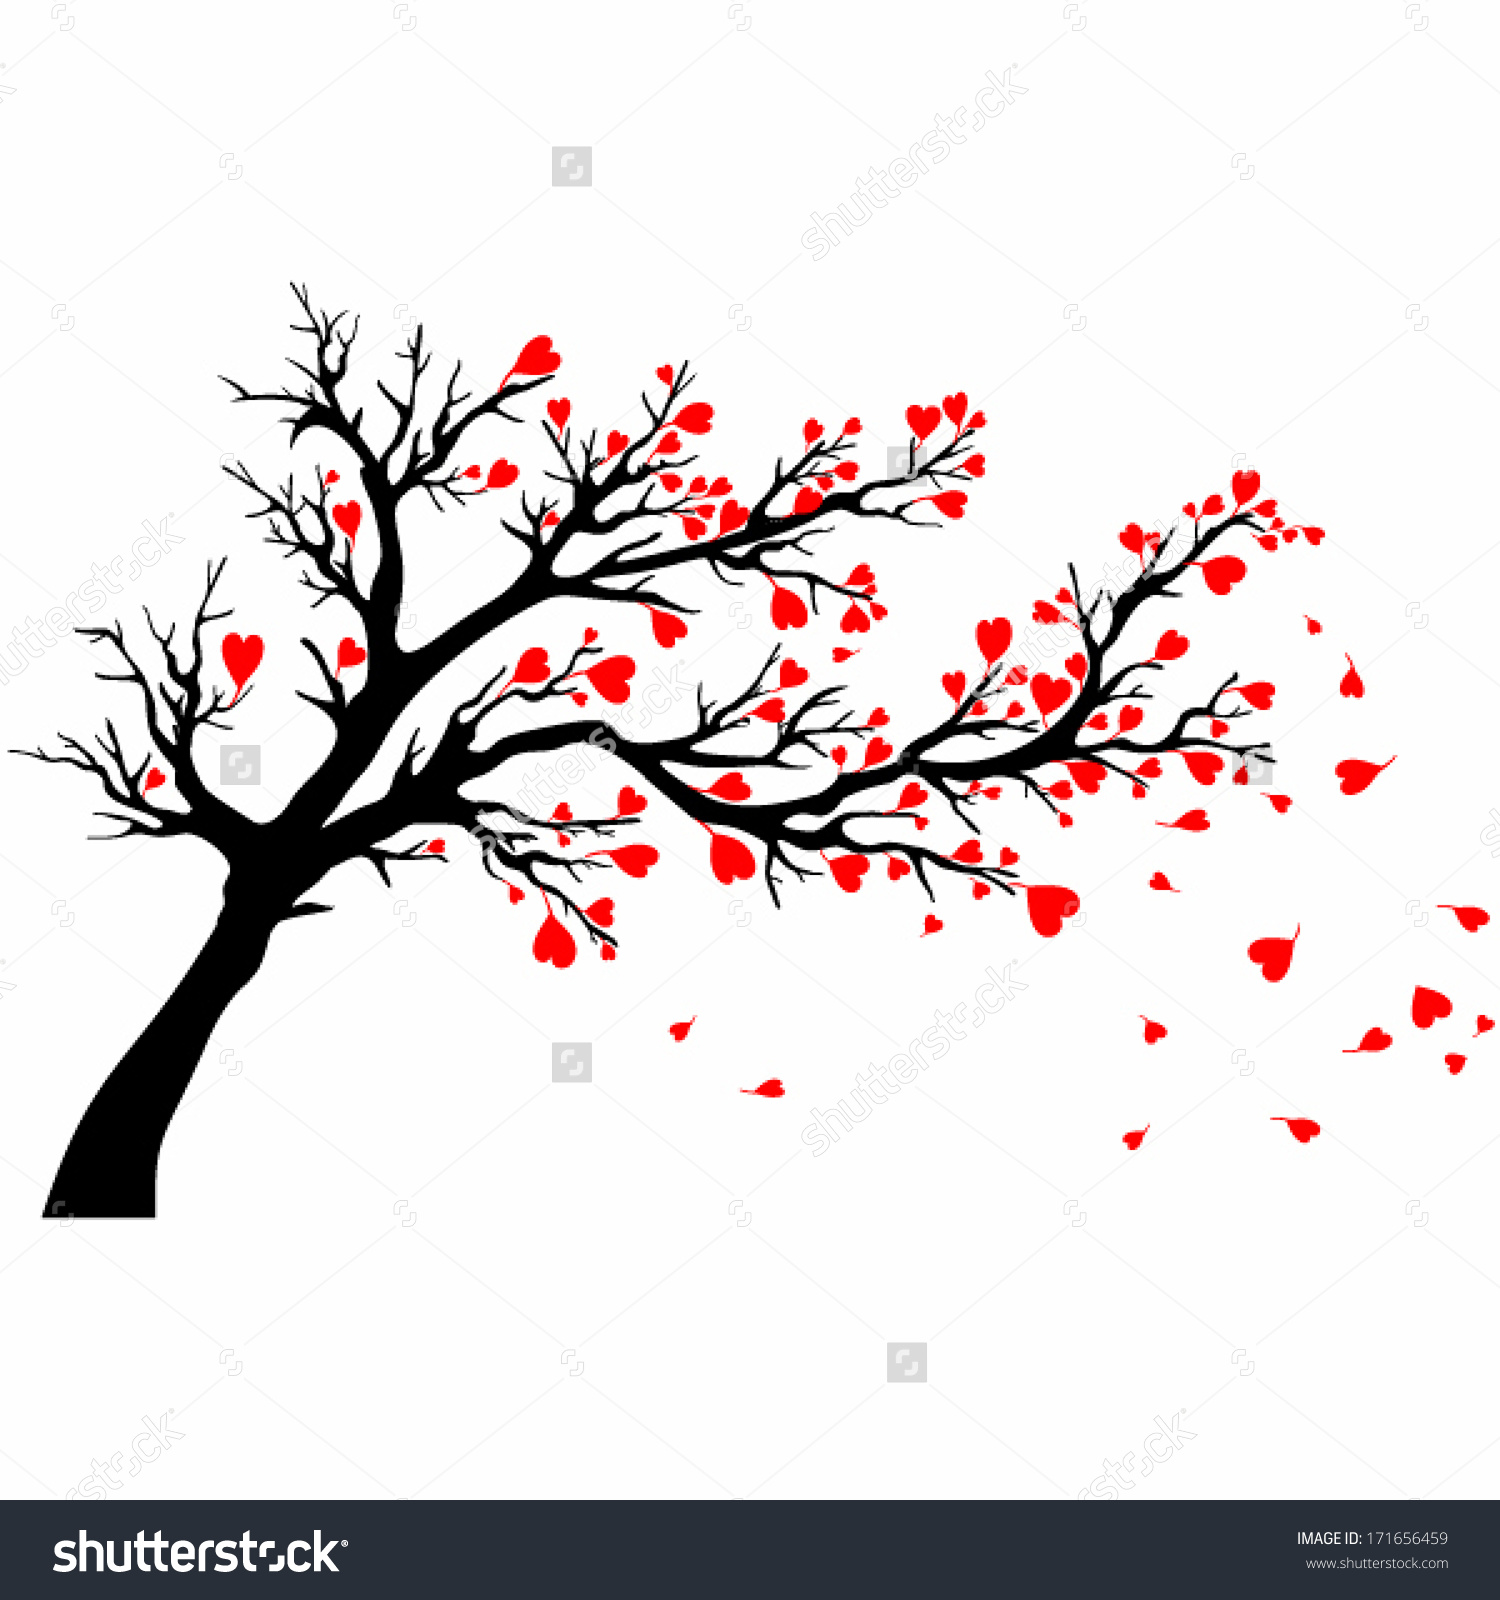 Tree clipart wind blowing #11